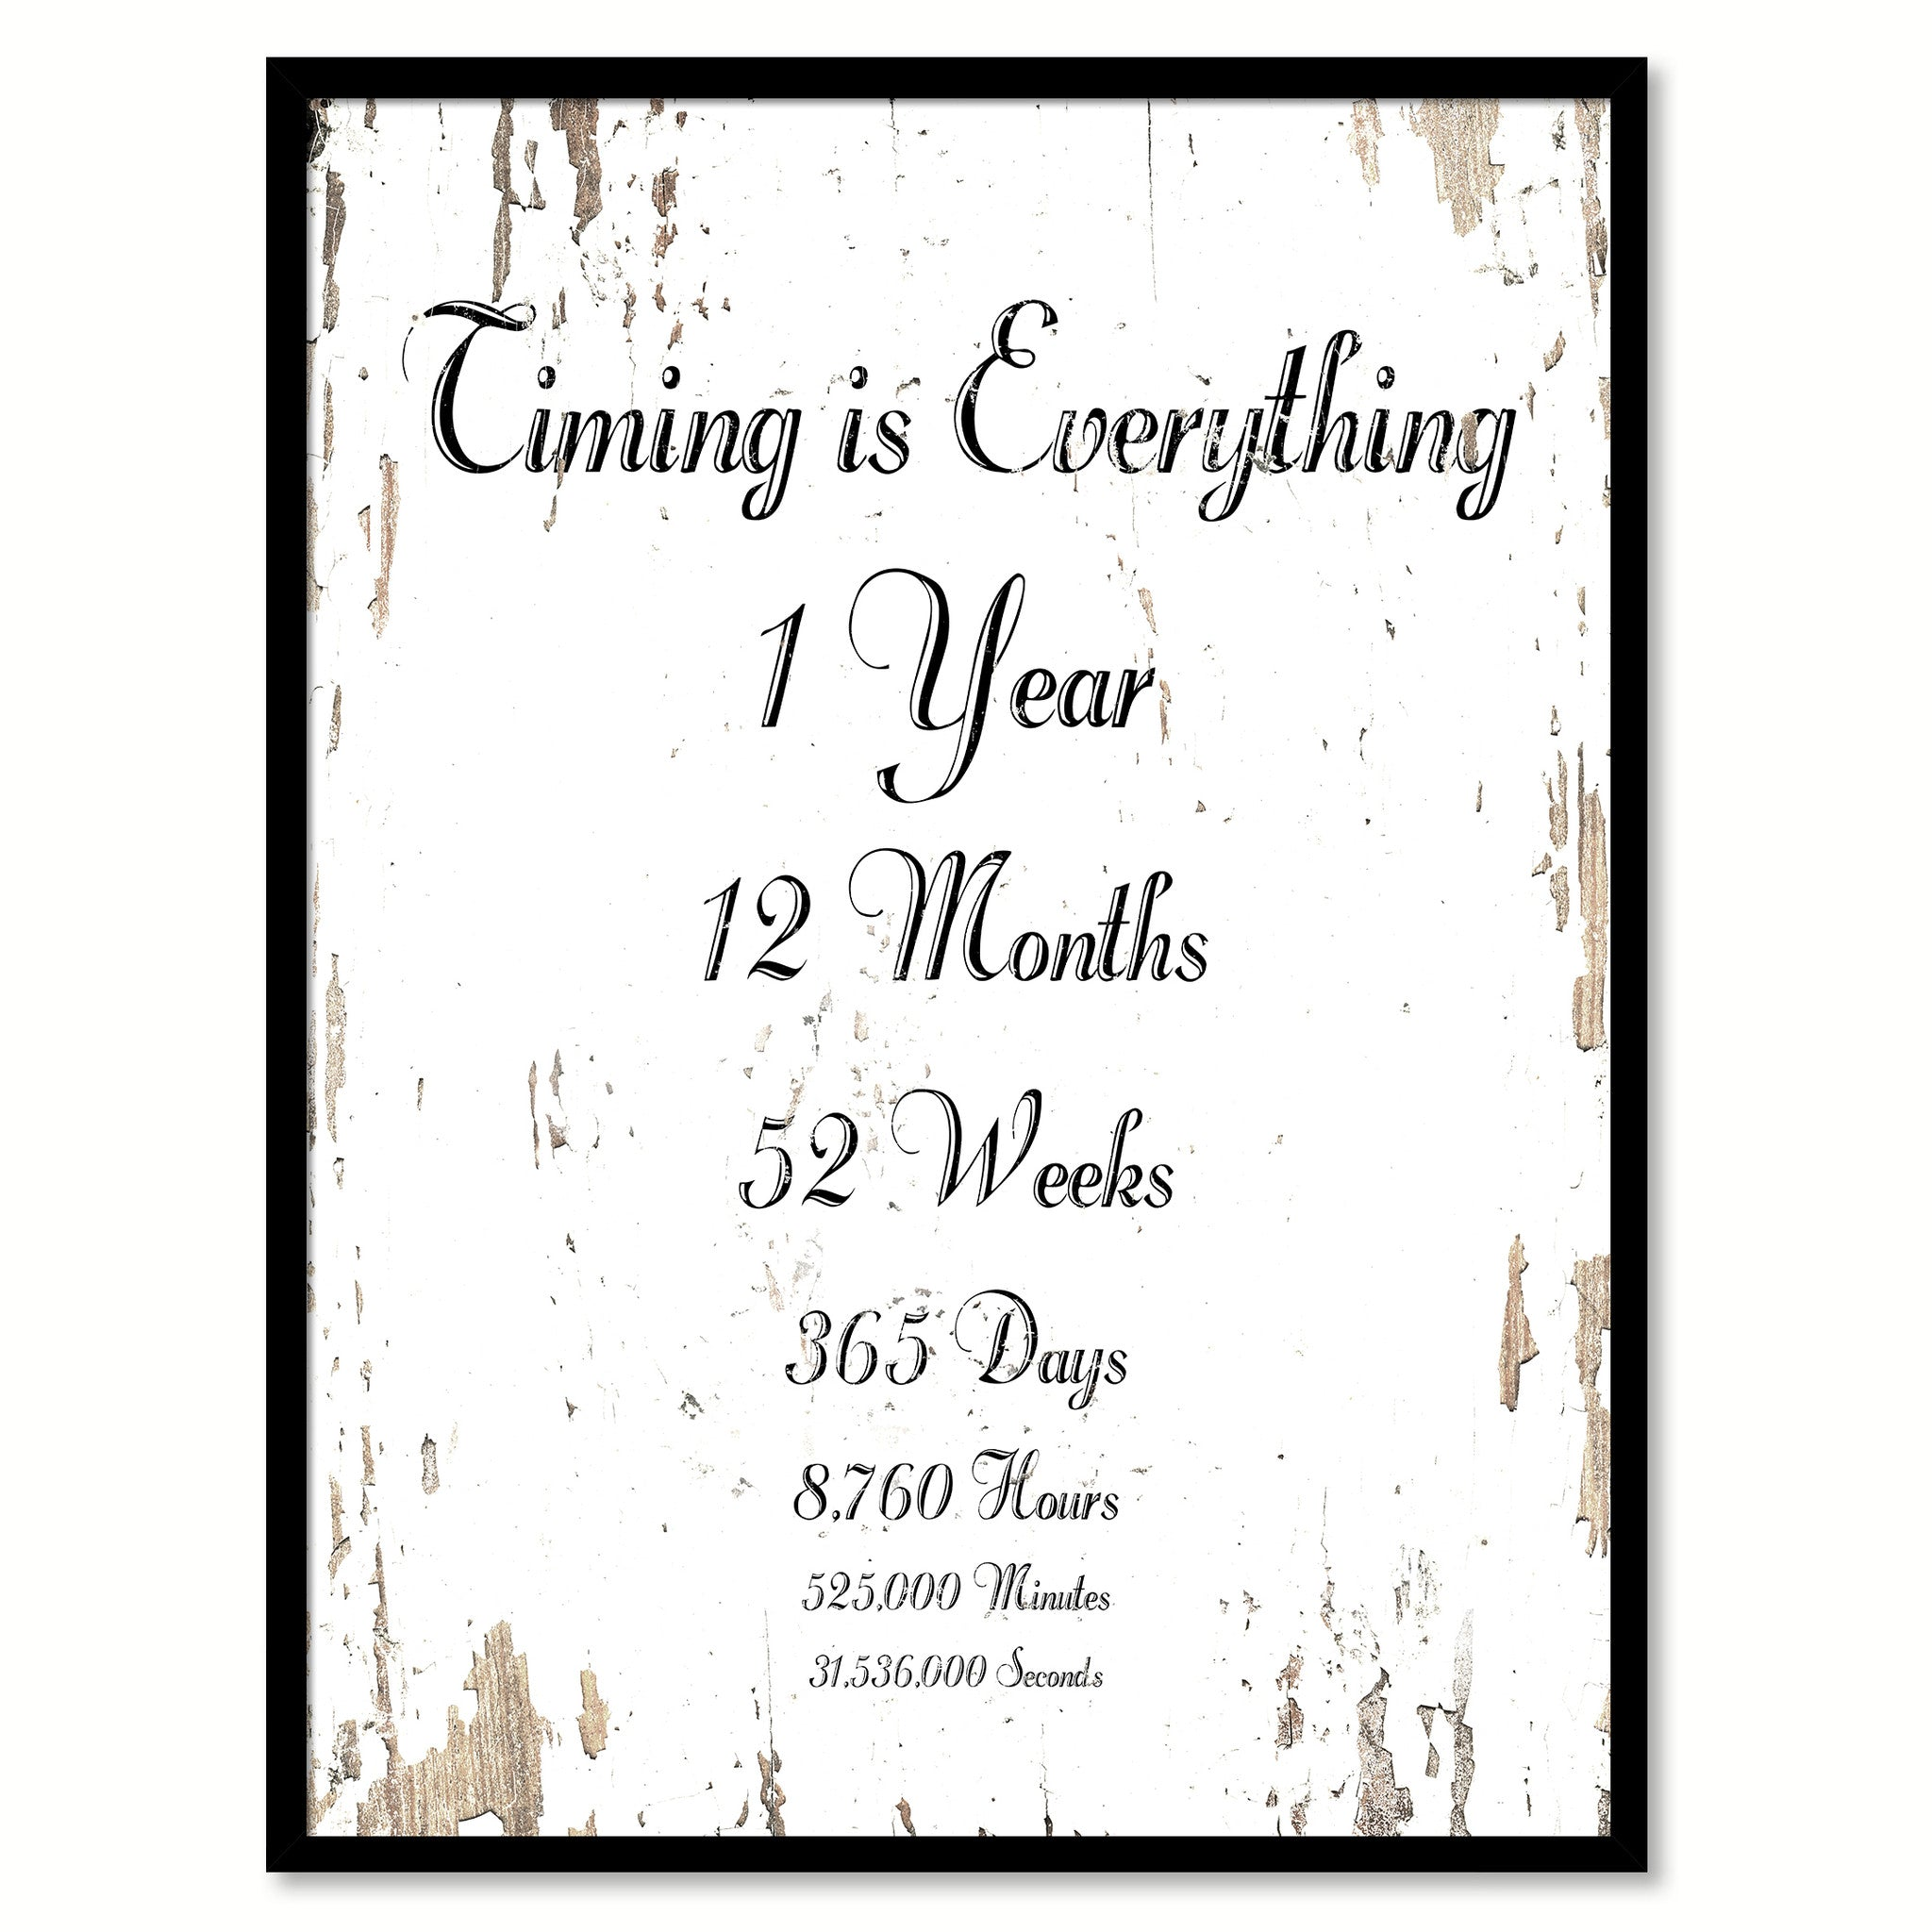 Timing is everything 1 Year 12 Months 52 Weeks 365 Days 8,760 Hours 525,000  Minutes 31,536,000 Seconds Quote Saying Canvas Print with Picture Frame  Home ...